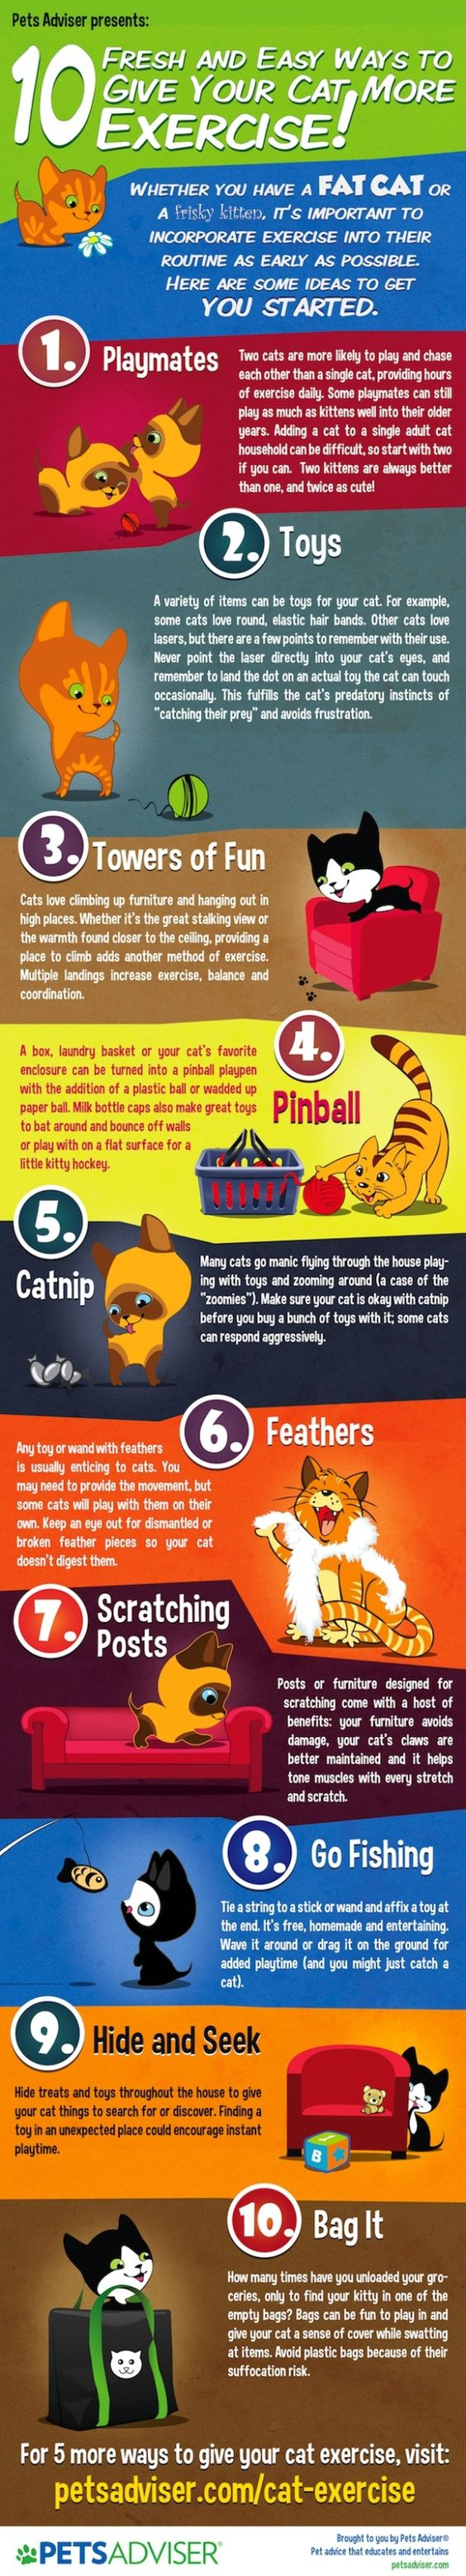 Cats | Tipsögraphic | More cats tips at http://www.tipsographic.com/: